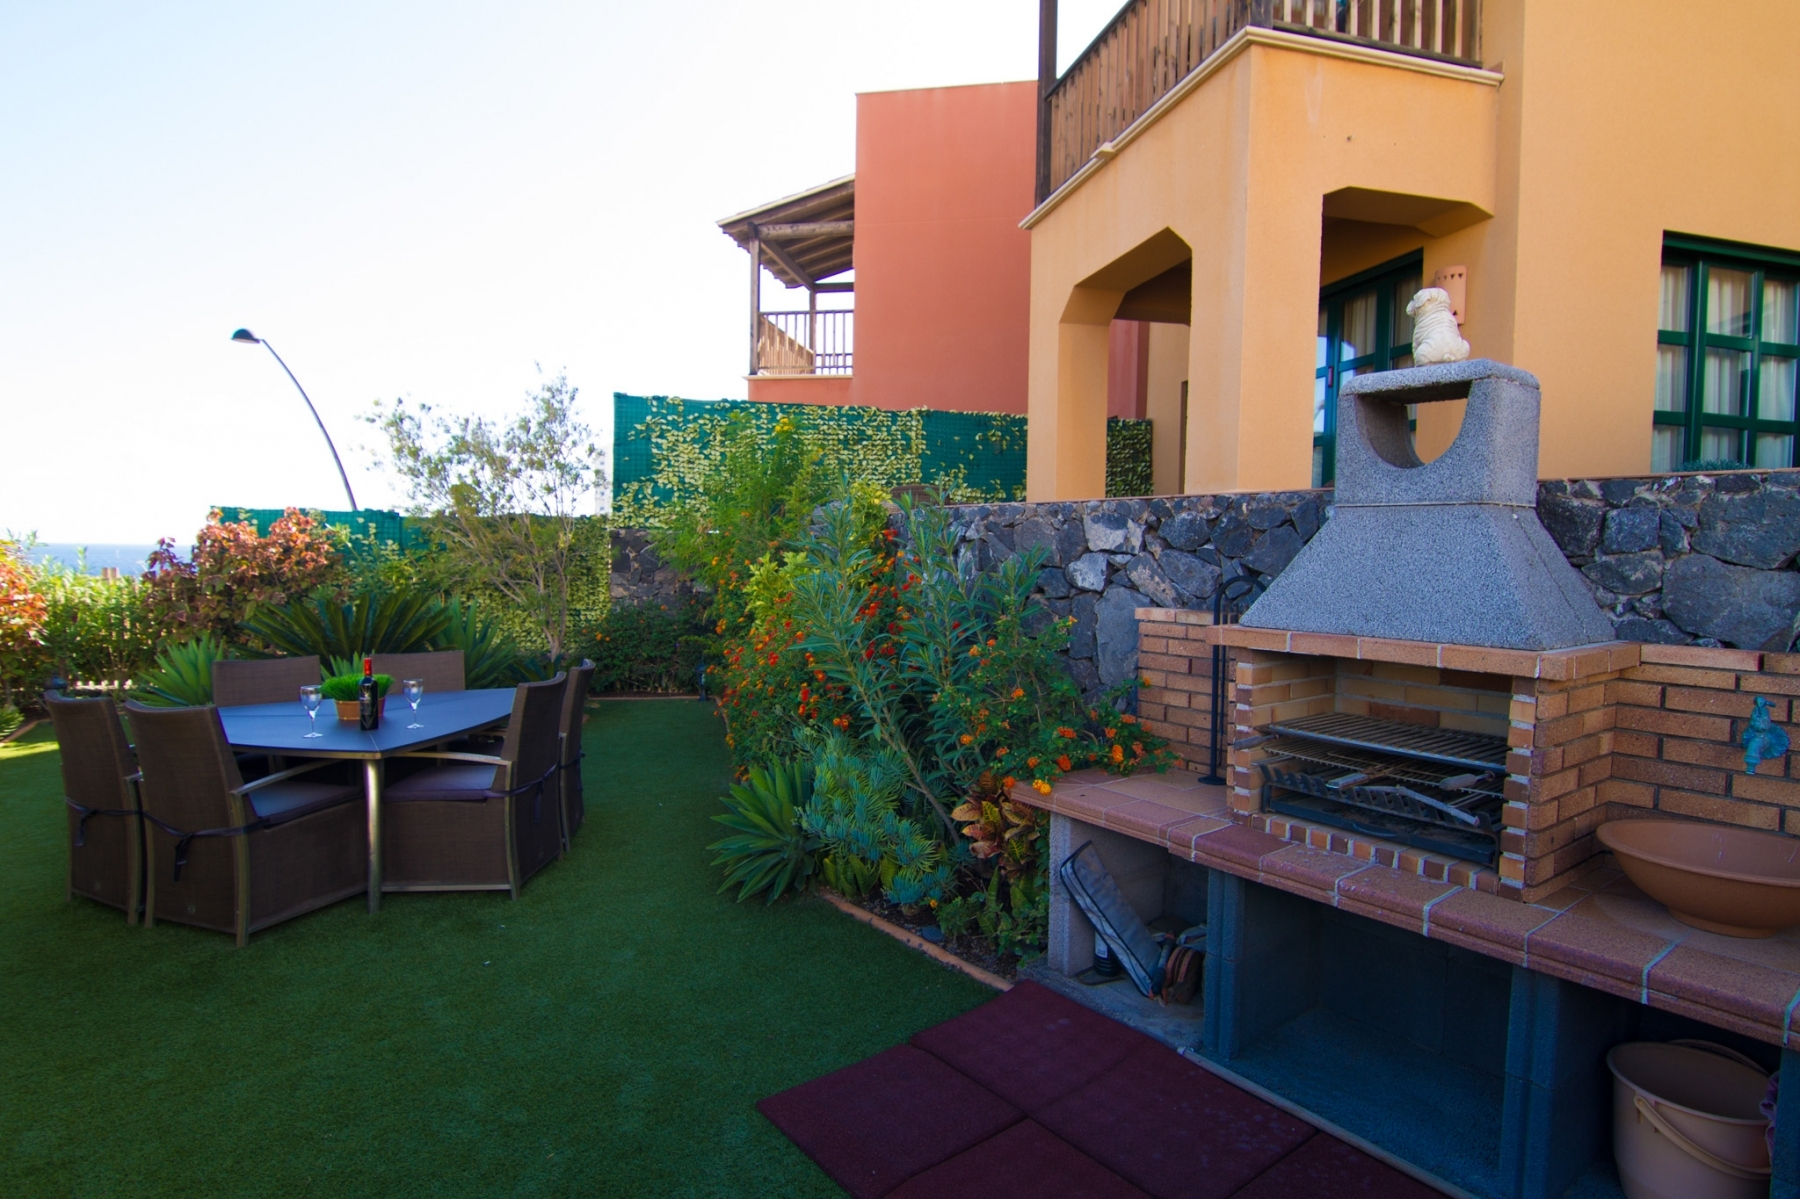 Properties for Sale in Tenerife, Canary Islands, Spain | SylkWayStar Real Estate. Luxury 3 bedrooms townhouse on the first line - San Blas . Image-22439